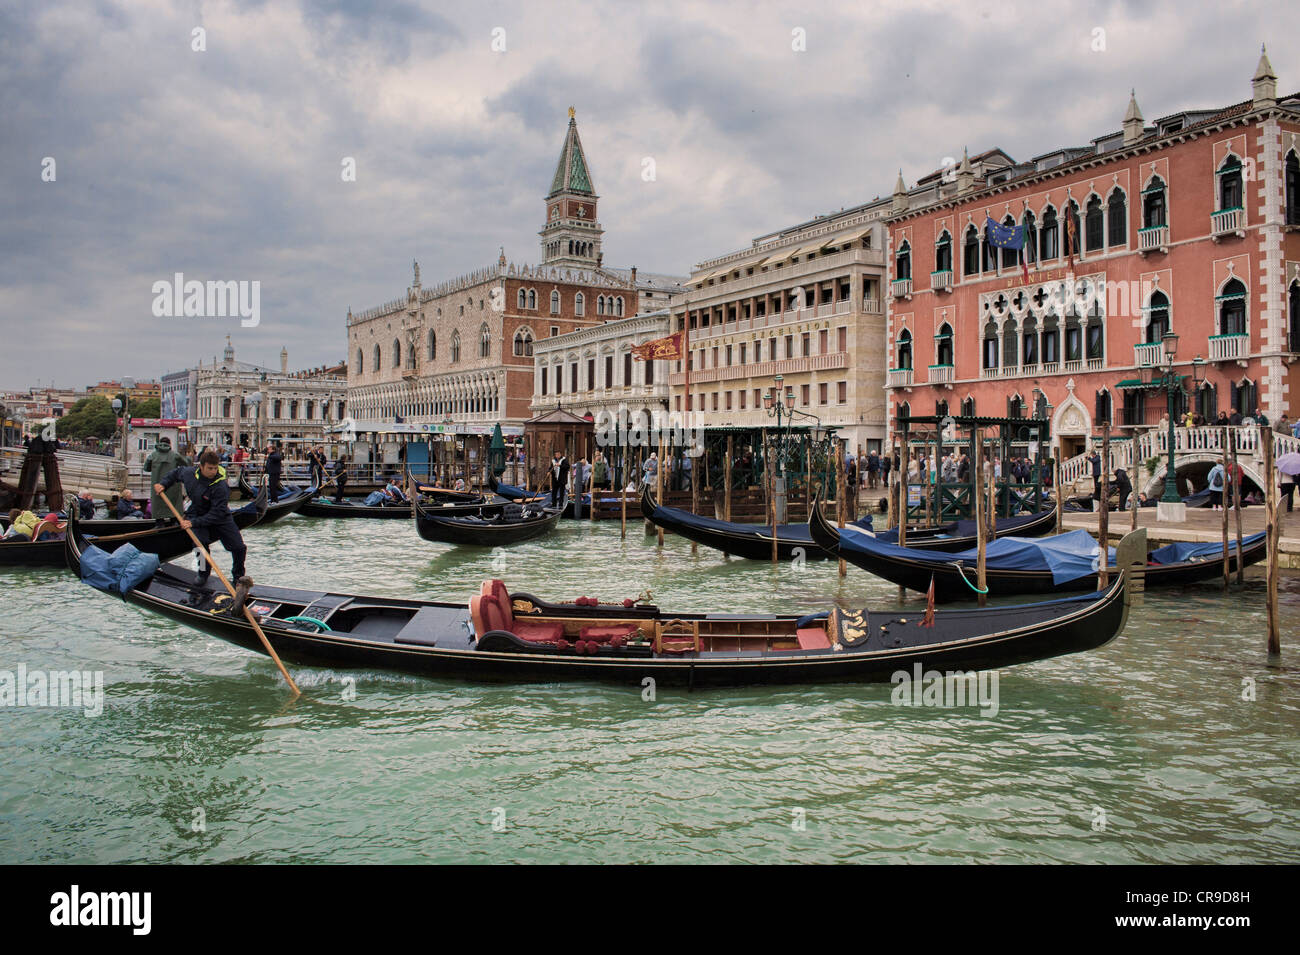 Gondola's, Campanile Di San Marco and Doges Palace, Venice, Italy. - Stock Image